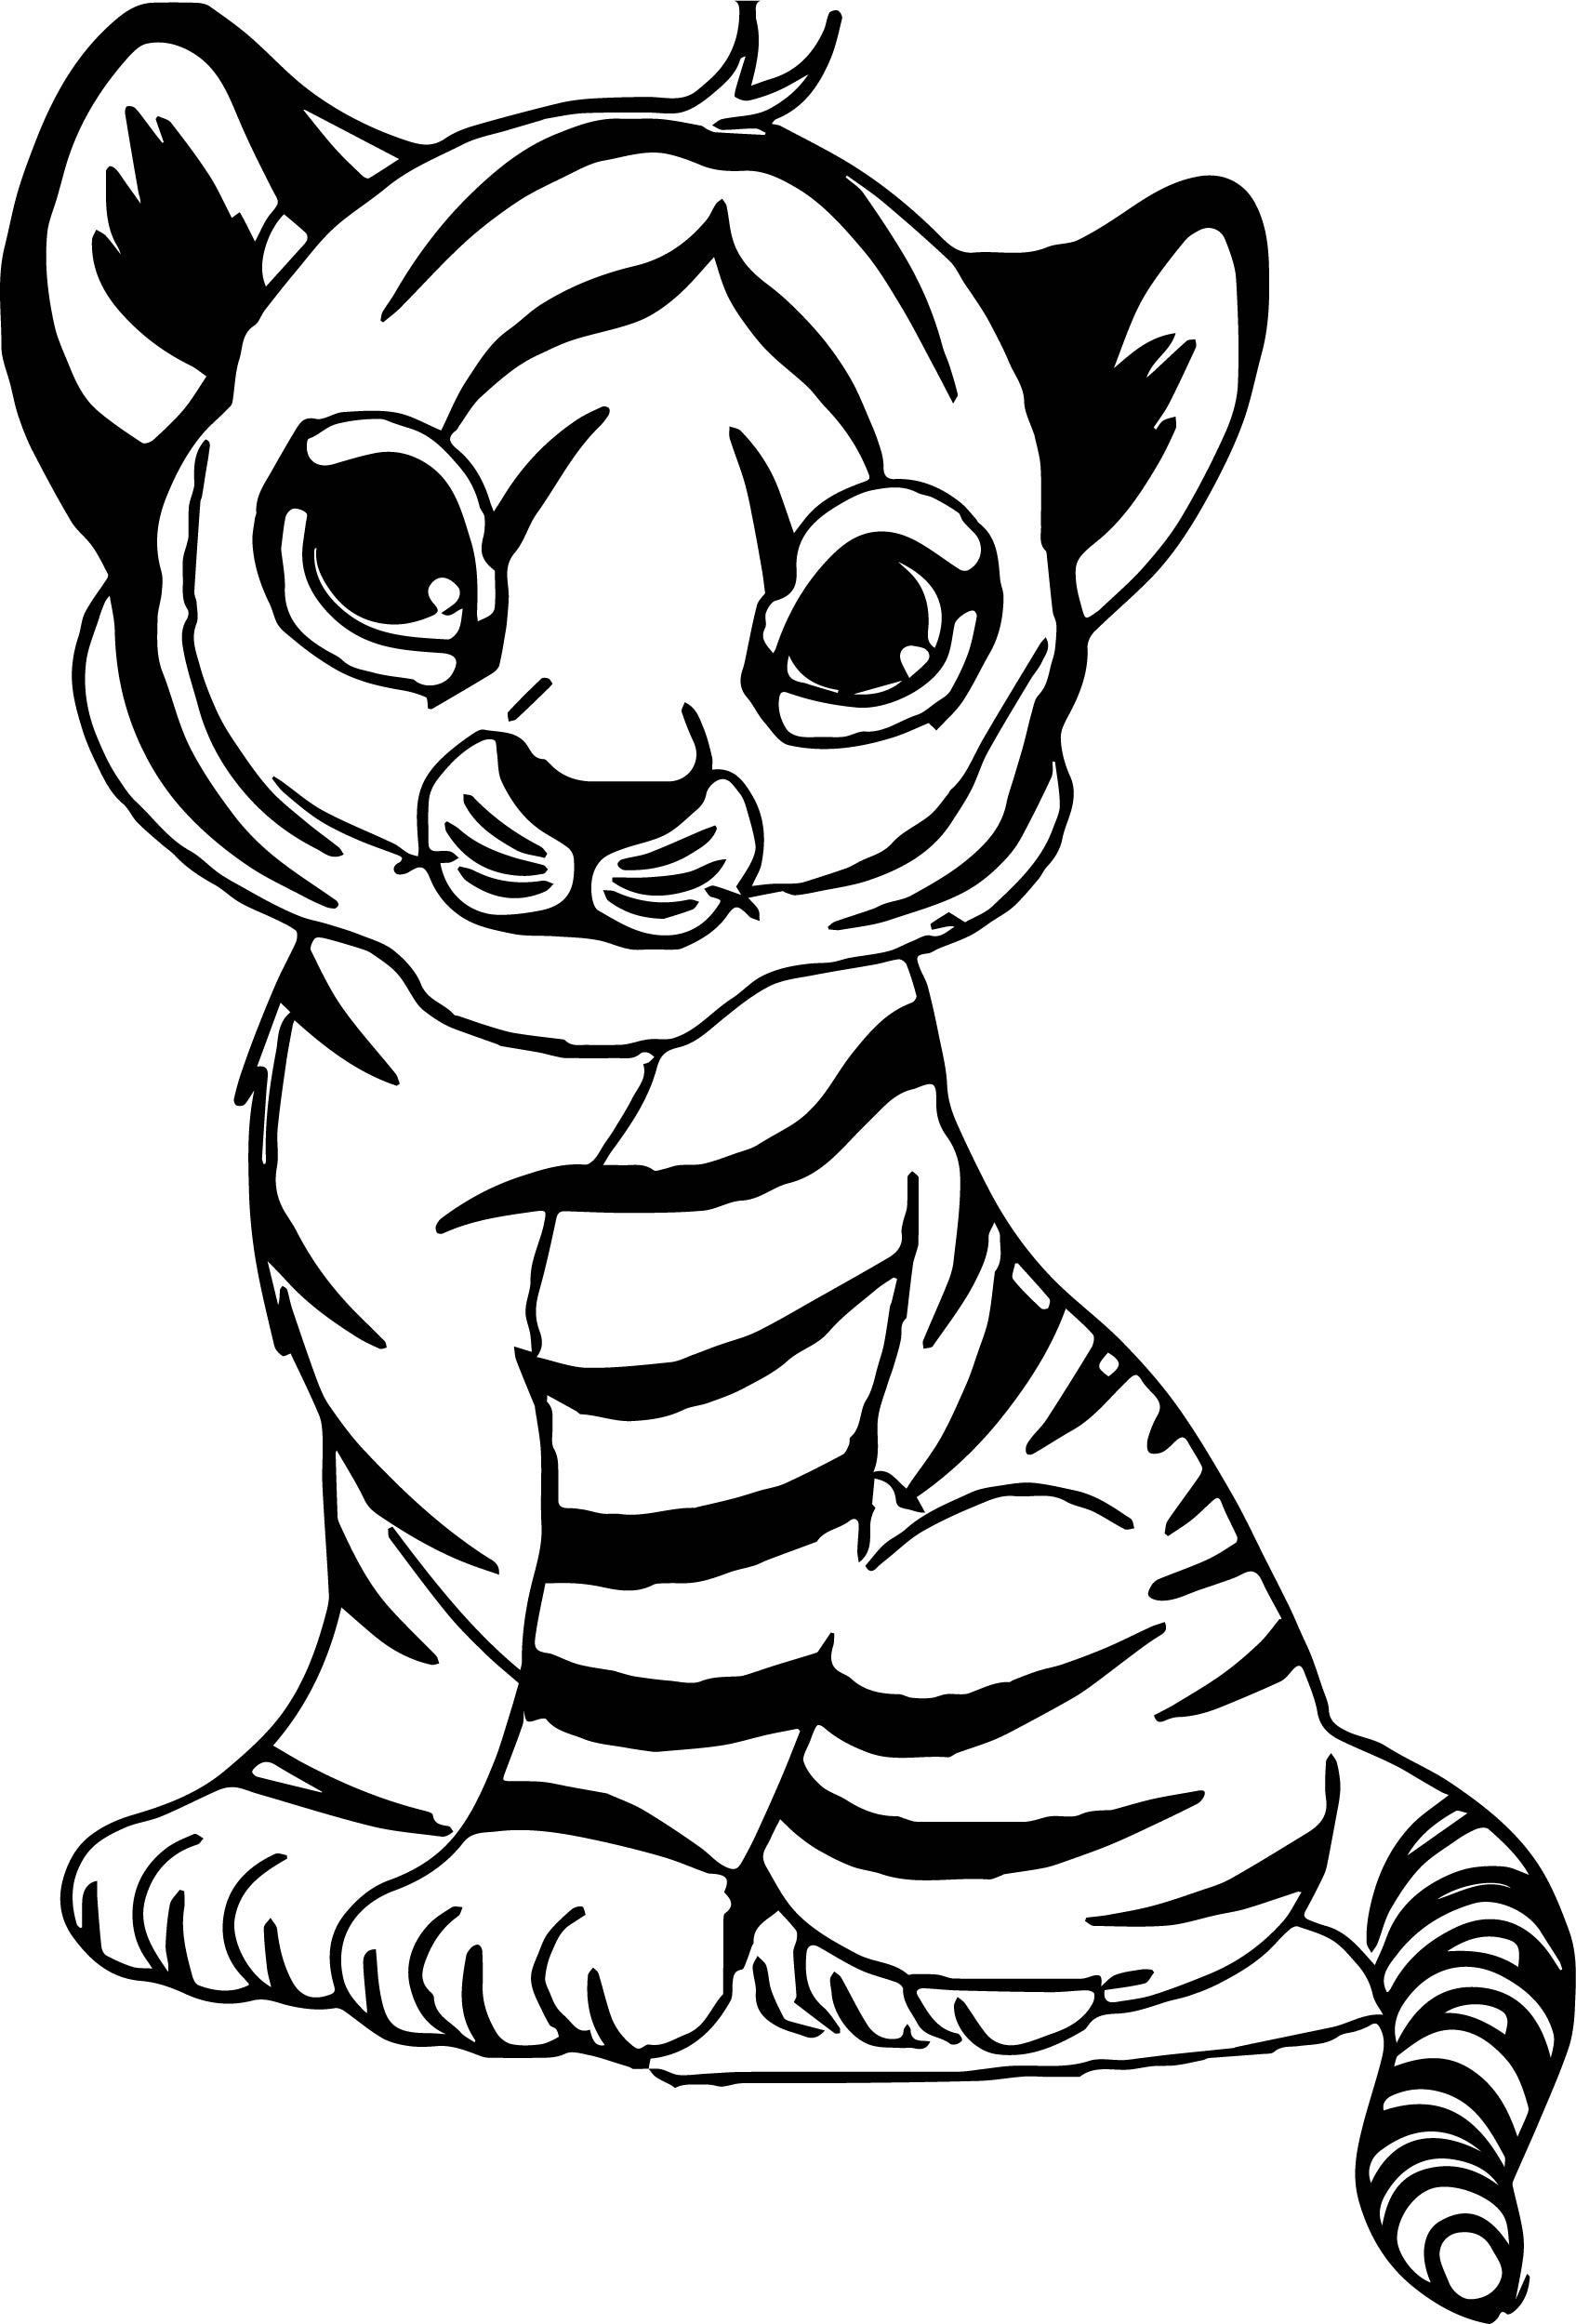 tiger pictures to color tigers to print for free tigers kids coloring pages tiger pictures color to